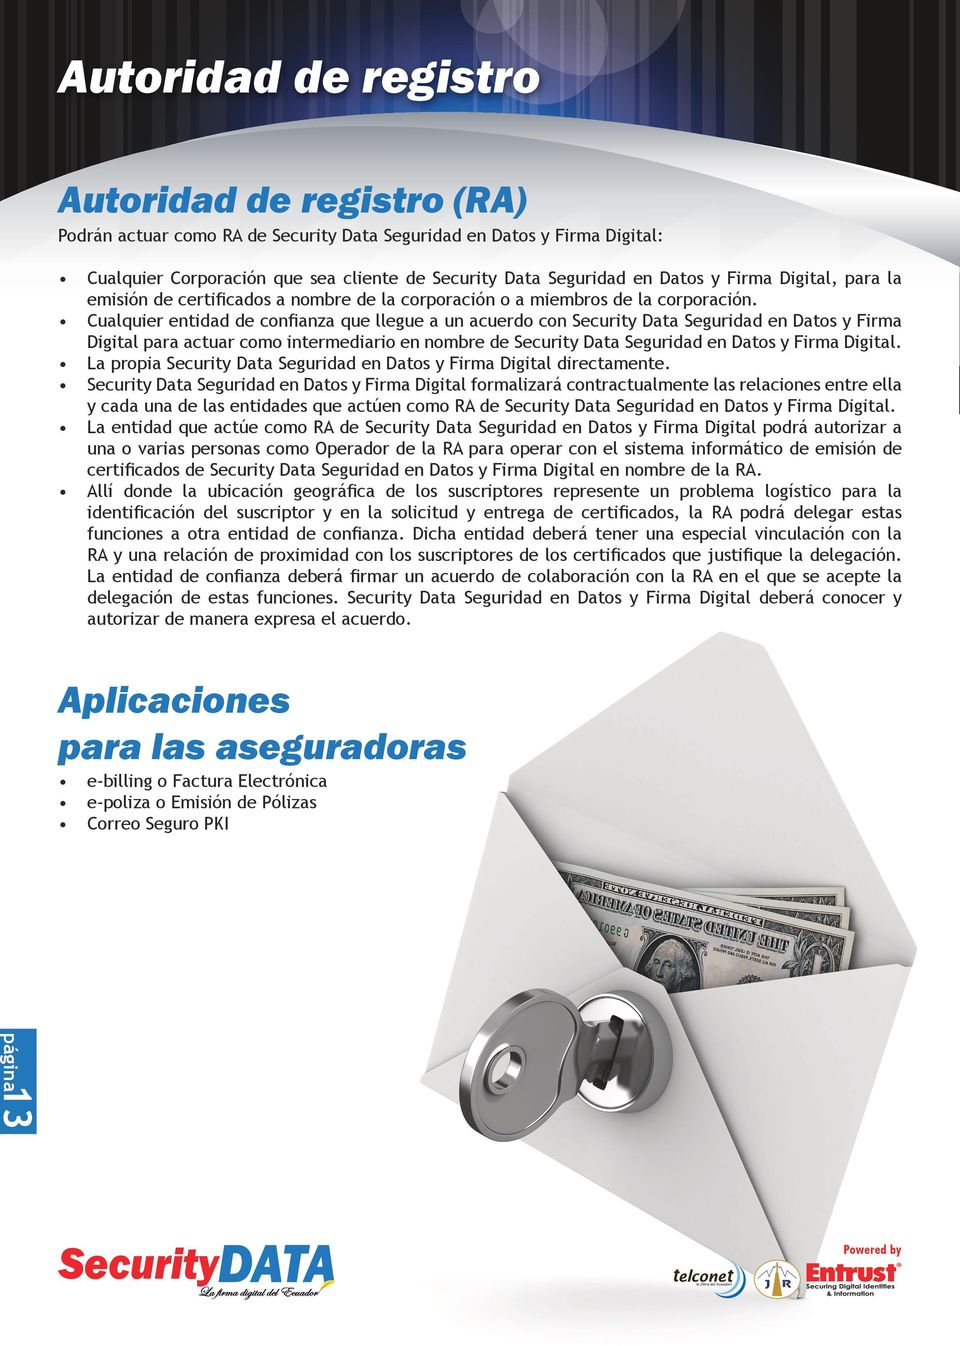 Cualquier entidad de confianza que llegue a un acuerdo con Security Data Seguridad en Datos y Firma Digital para actuar como intermediario en nombre de Security Data Seguridad en Datos y Firma